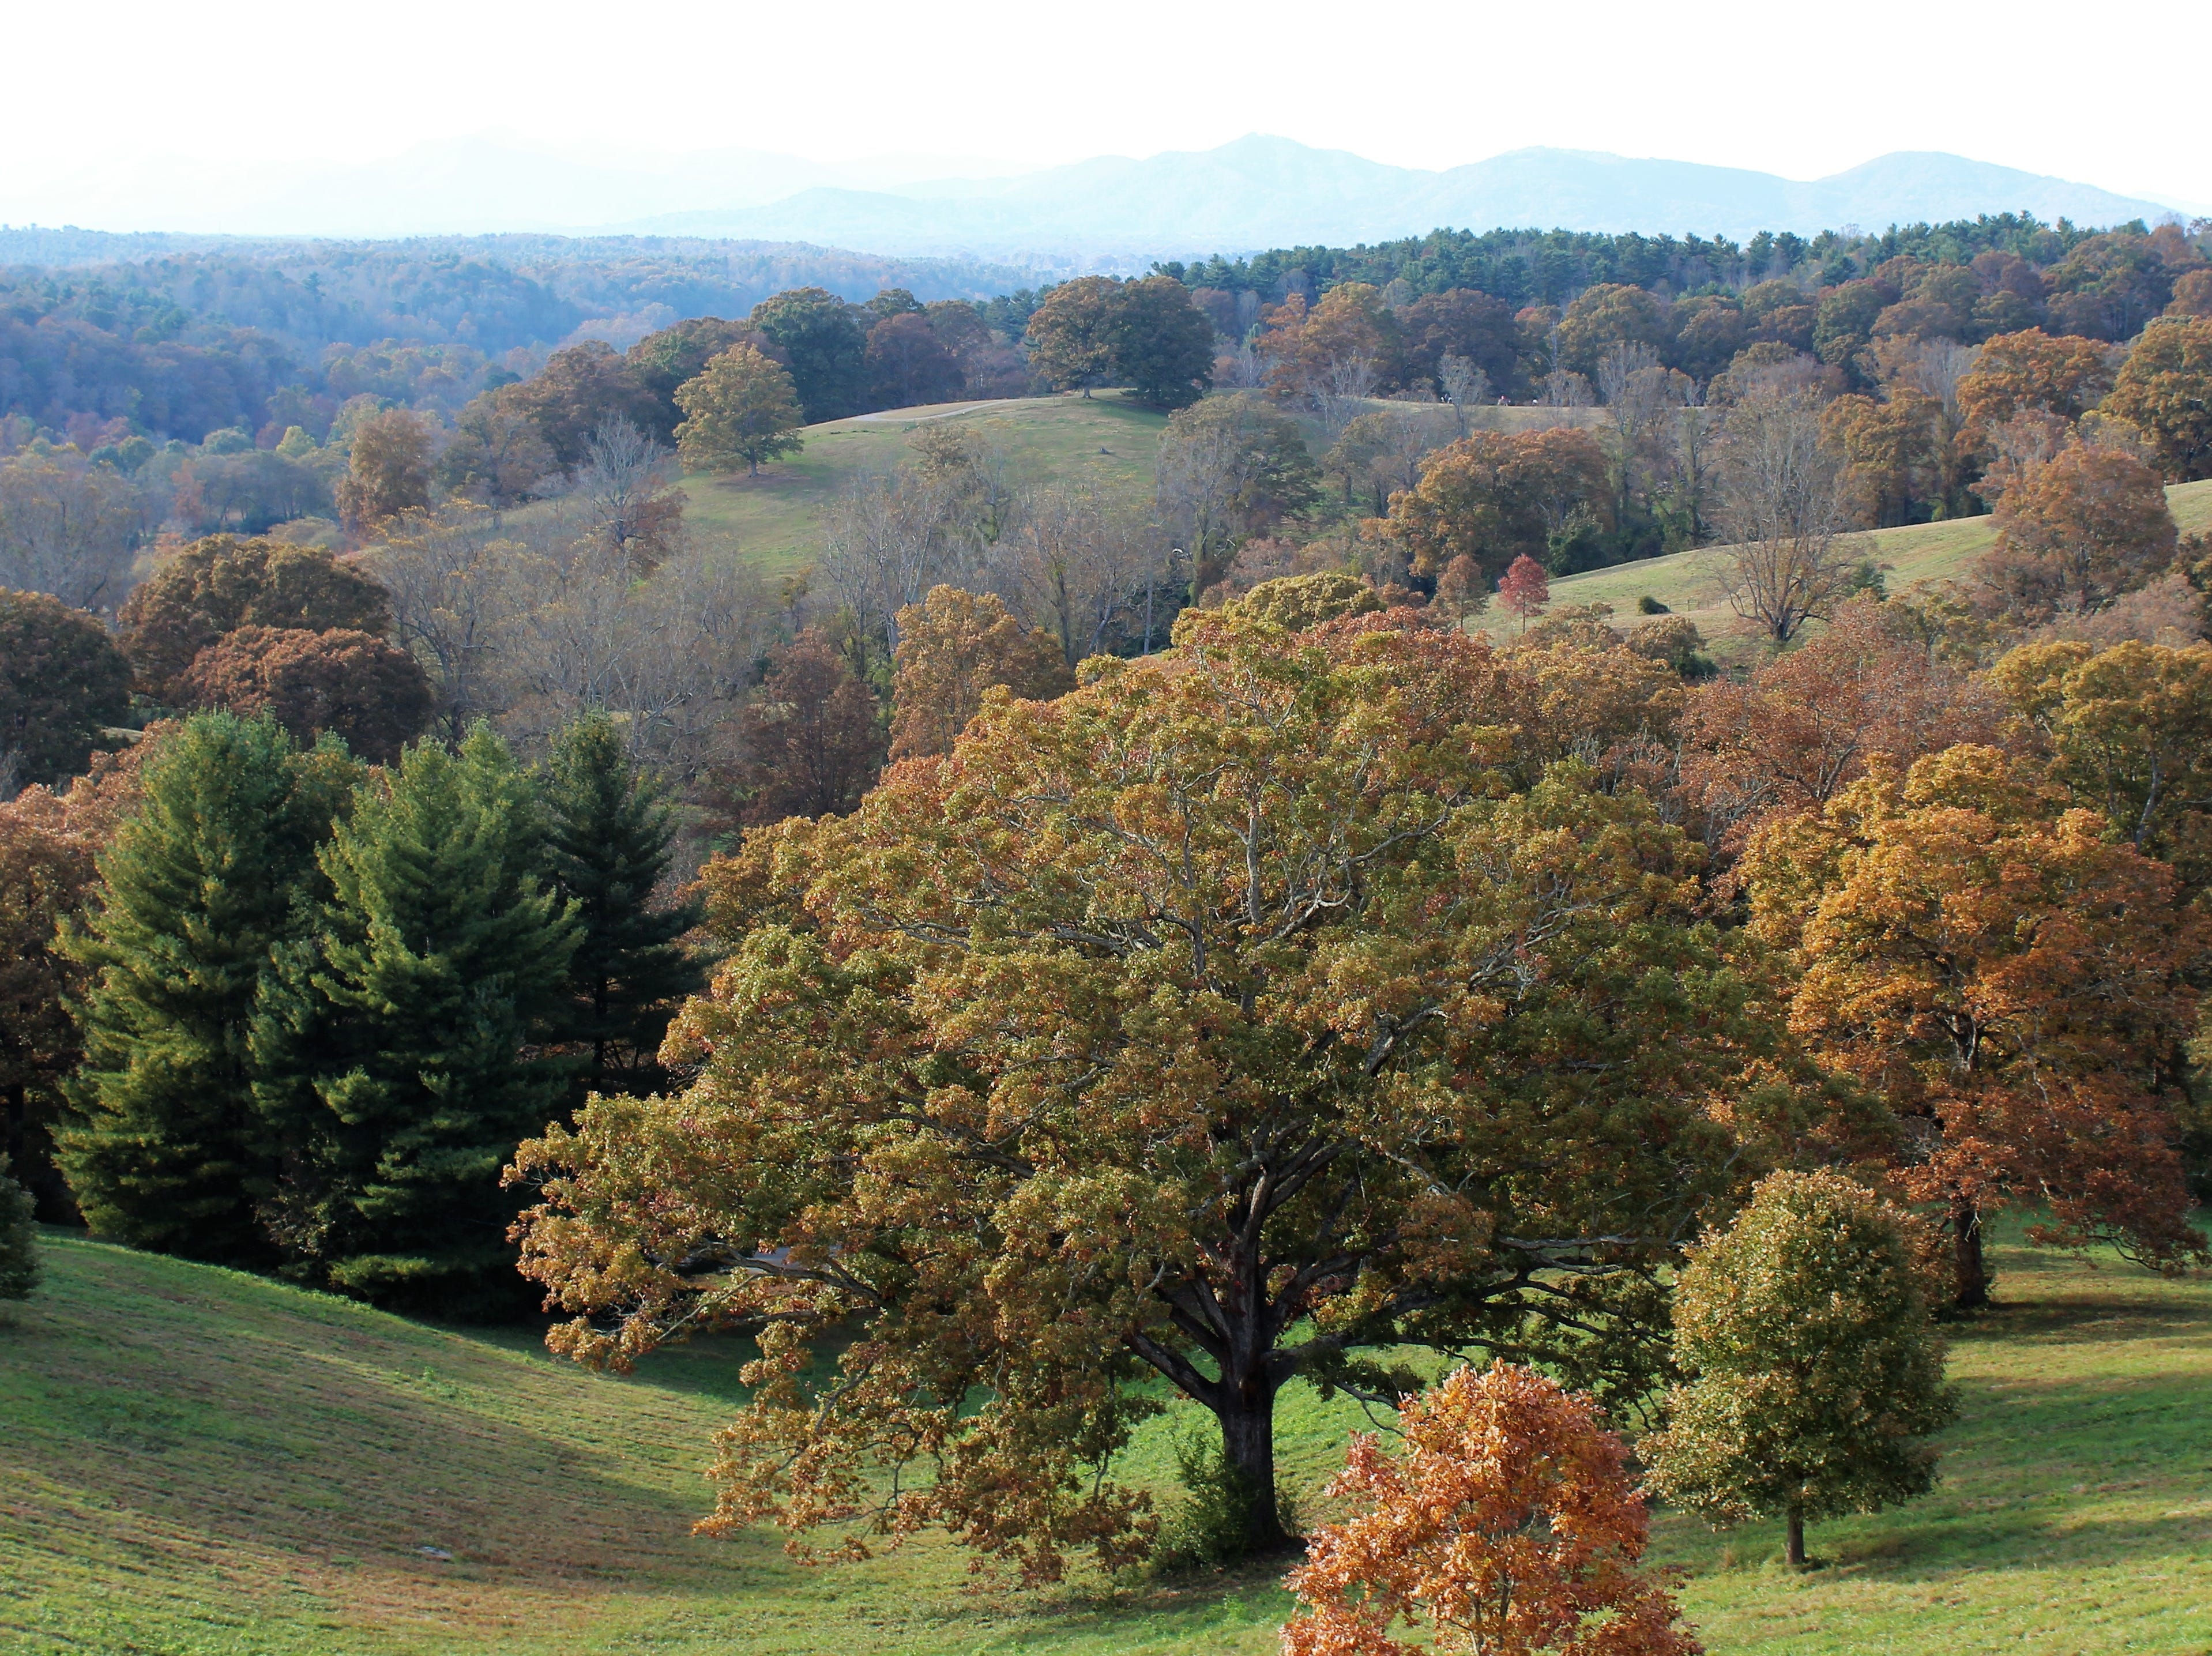 Sure, the view out from your back porch looks just like this. This fall setting looks west toward the Smoky Mountains of Tennessee from Biltmore House in western North Carolina. Great care was made to preserve the rural setting.